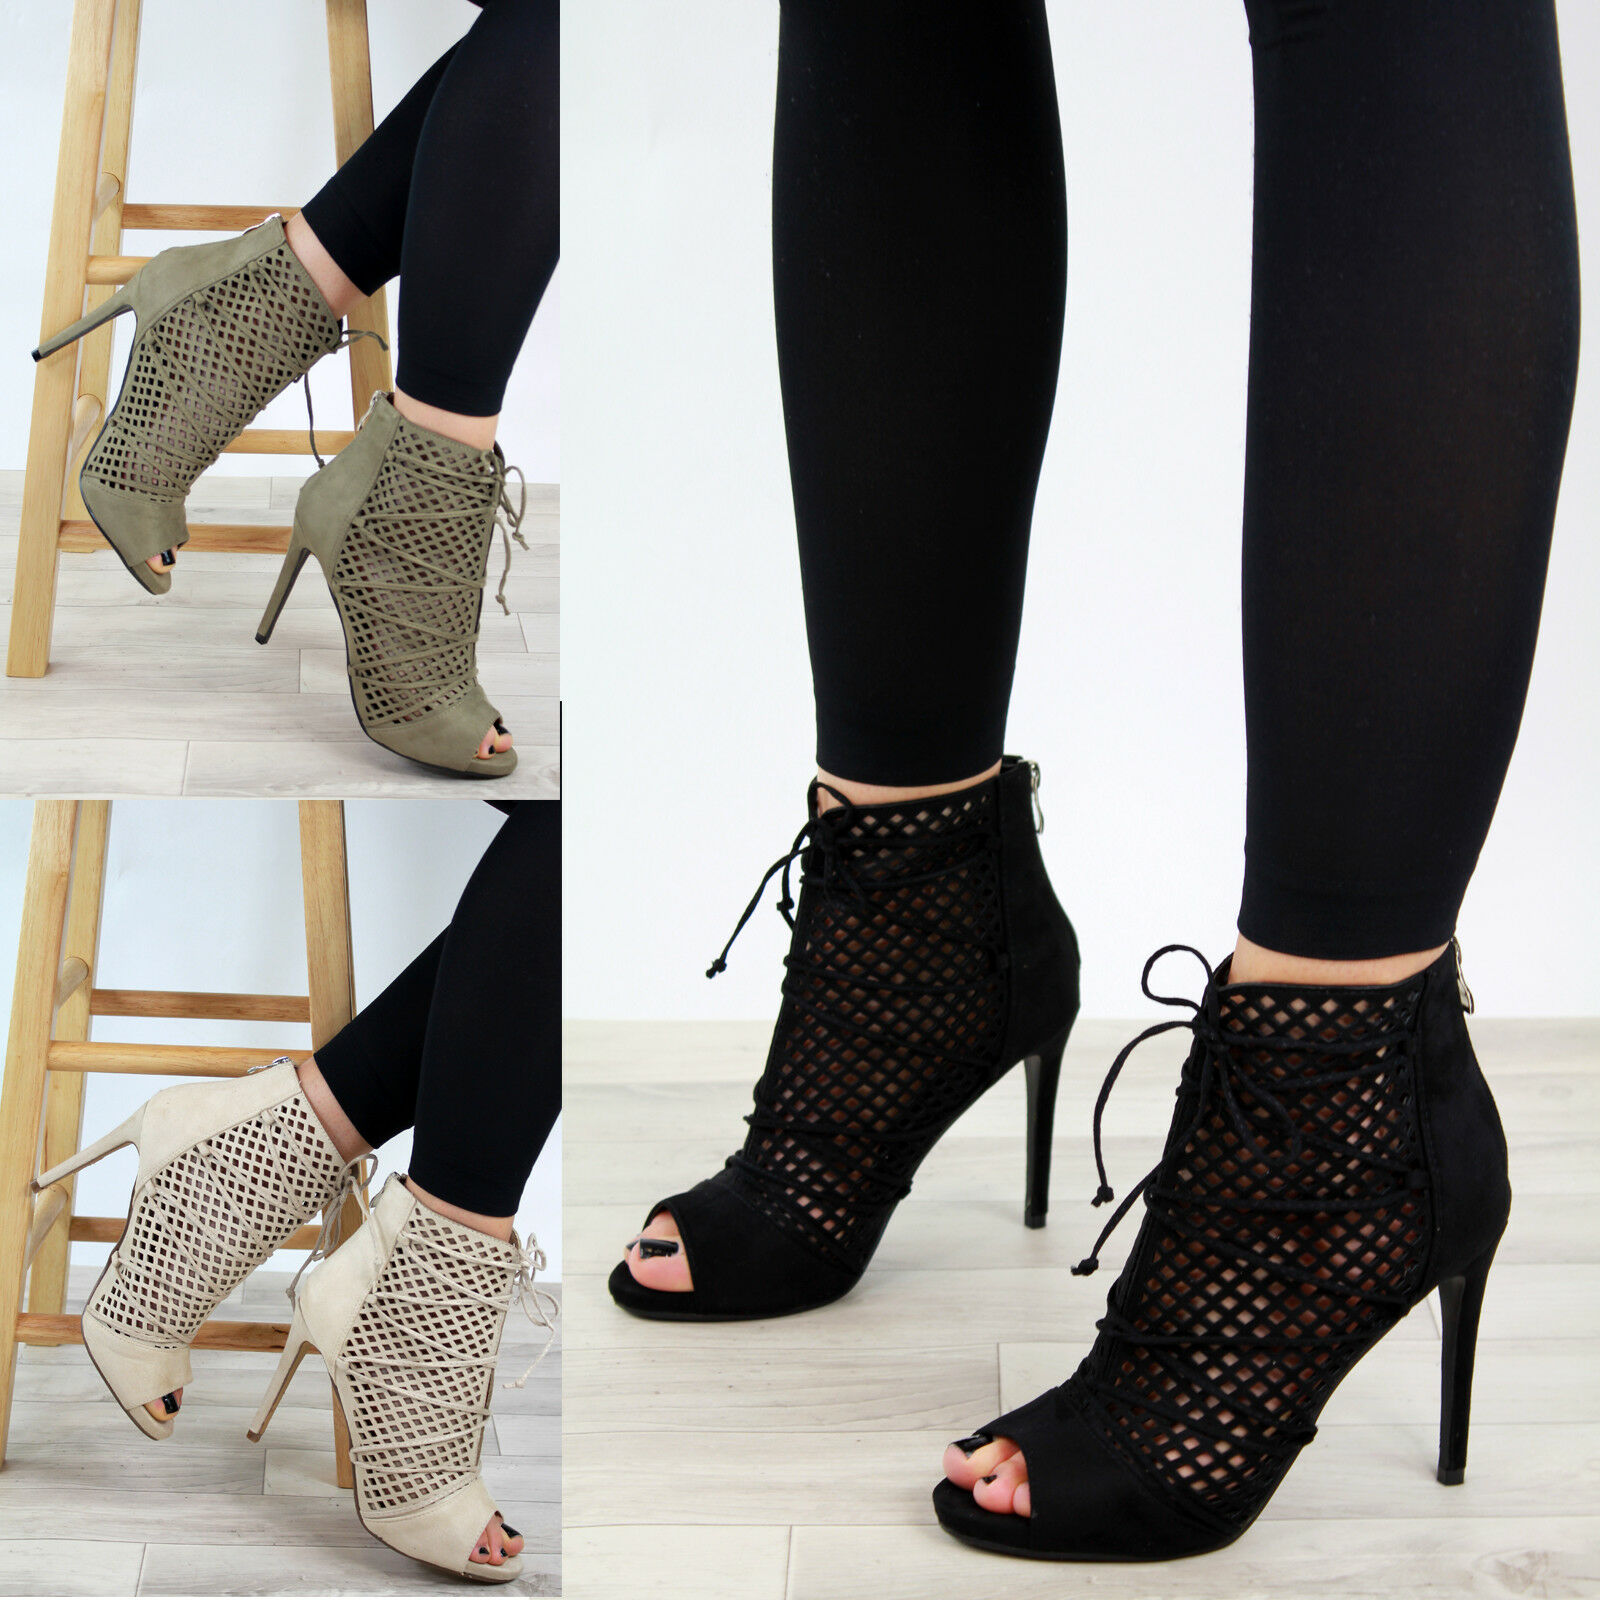 New Womens Stiletto High Heel Sandals Peep Party Toe Back Zip Mesh Party Peep Shoes Sizes b45de9